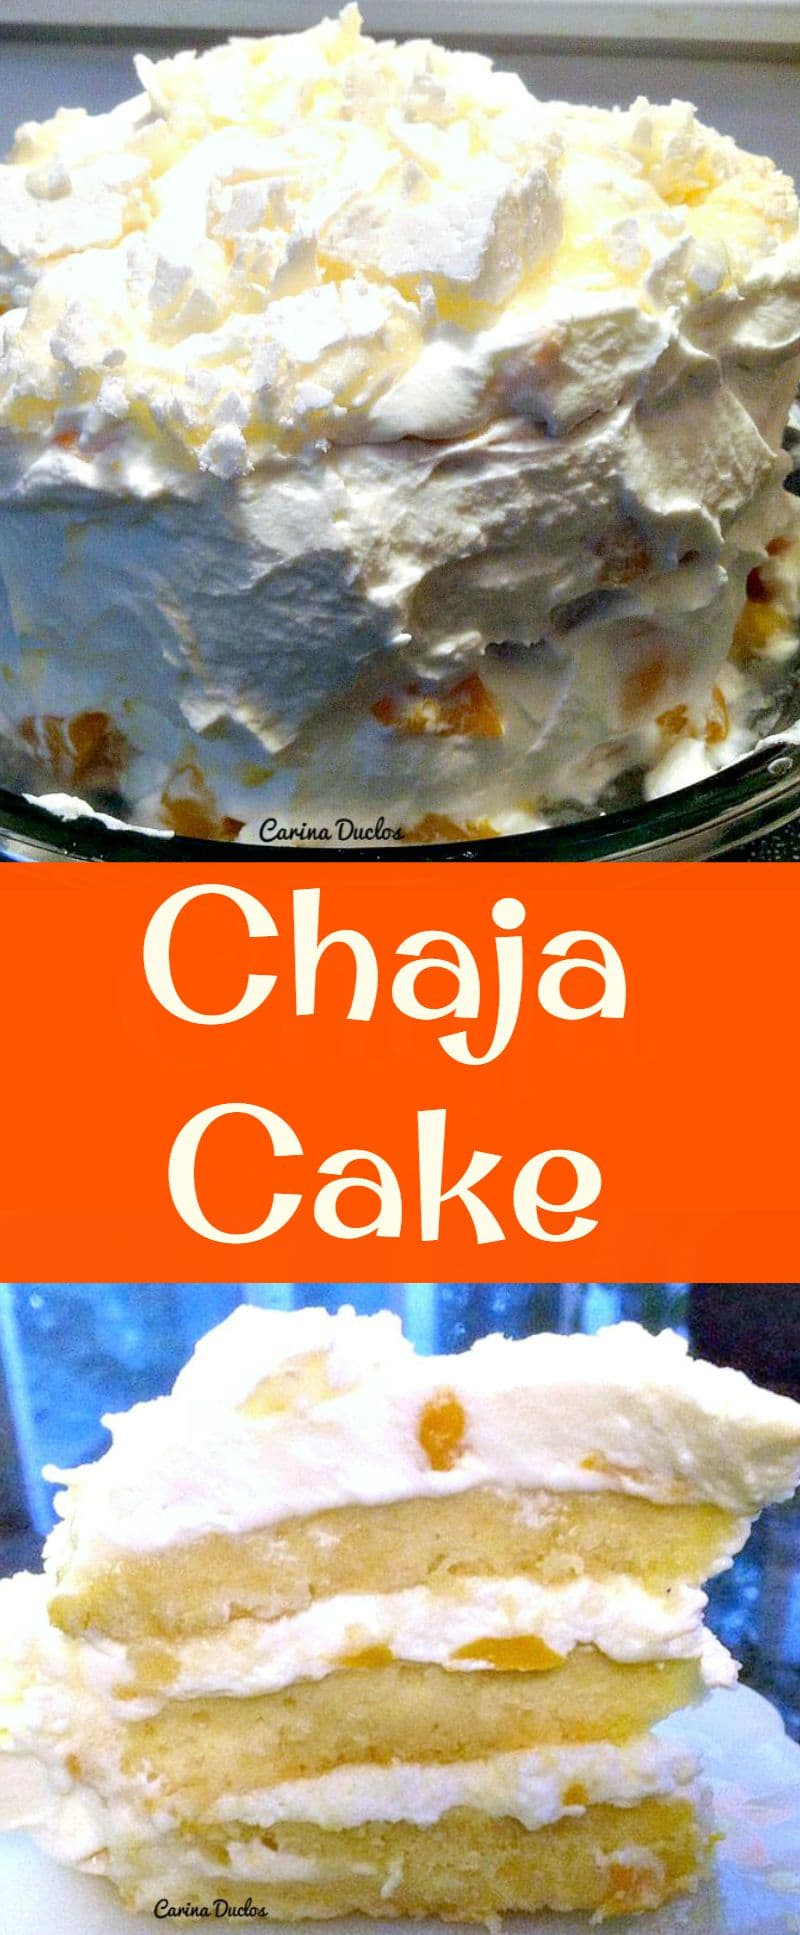 Celebration Chaja Cake - A jaw dropping cake of amazingness all the way from Uruguay!